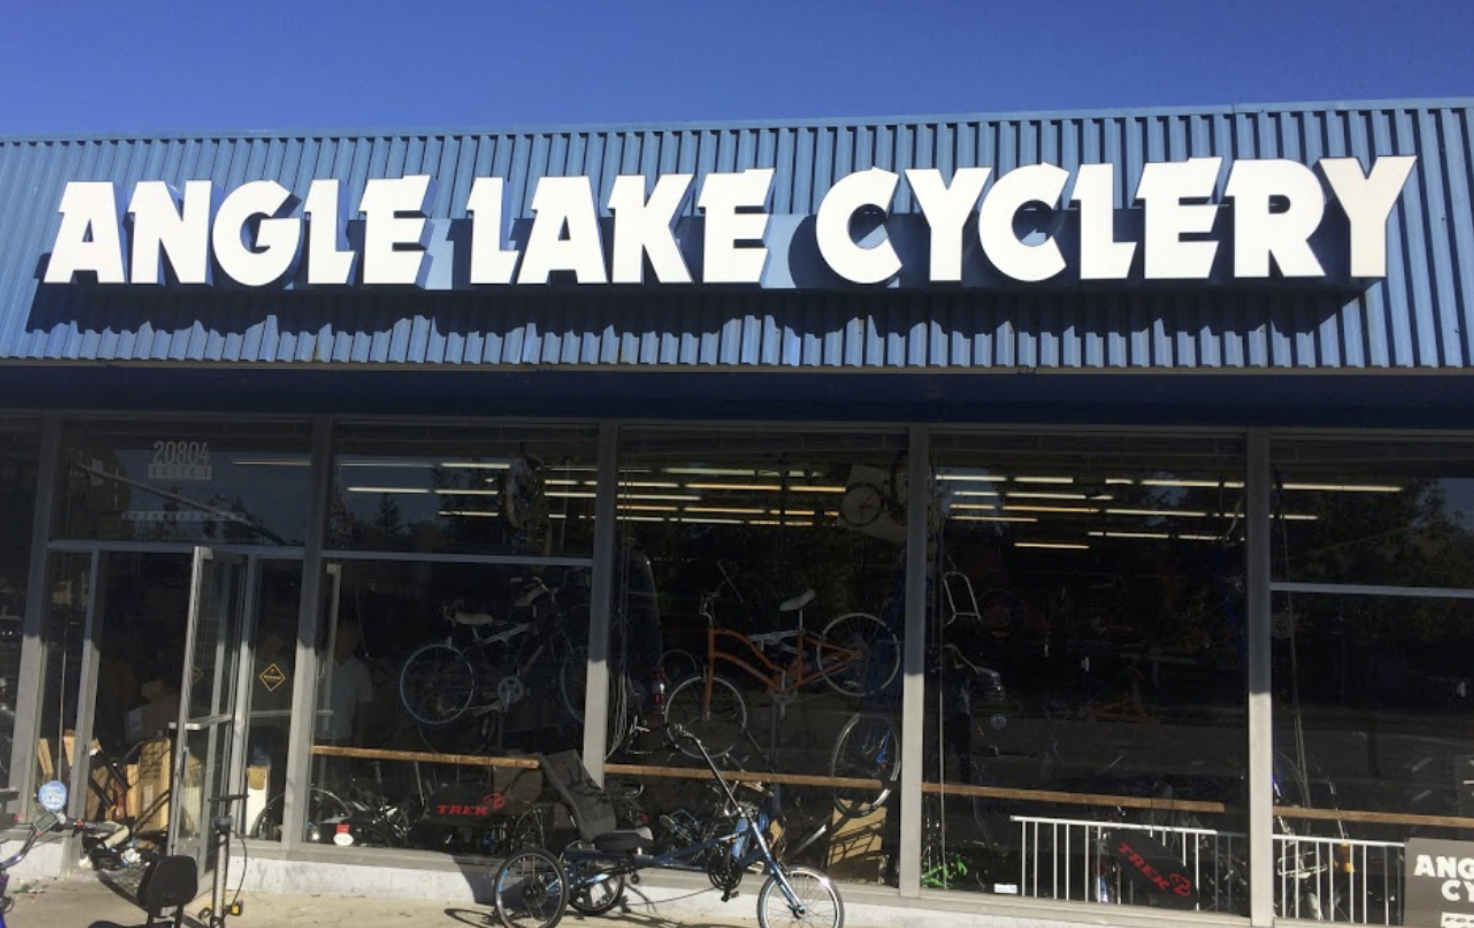 Angle Lake Cyclery original location